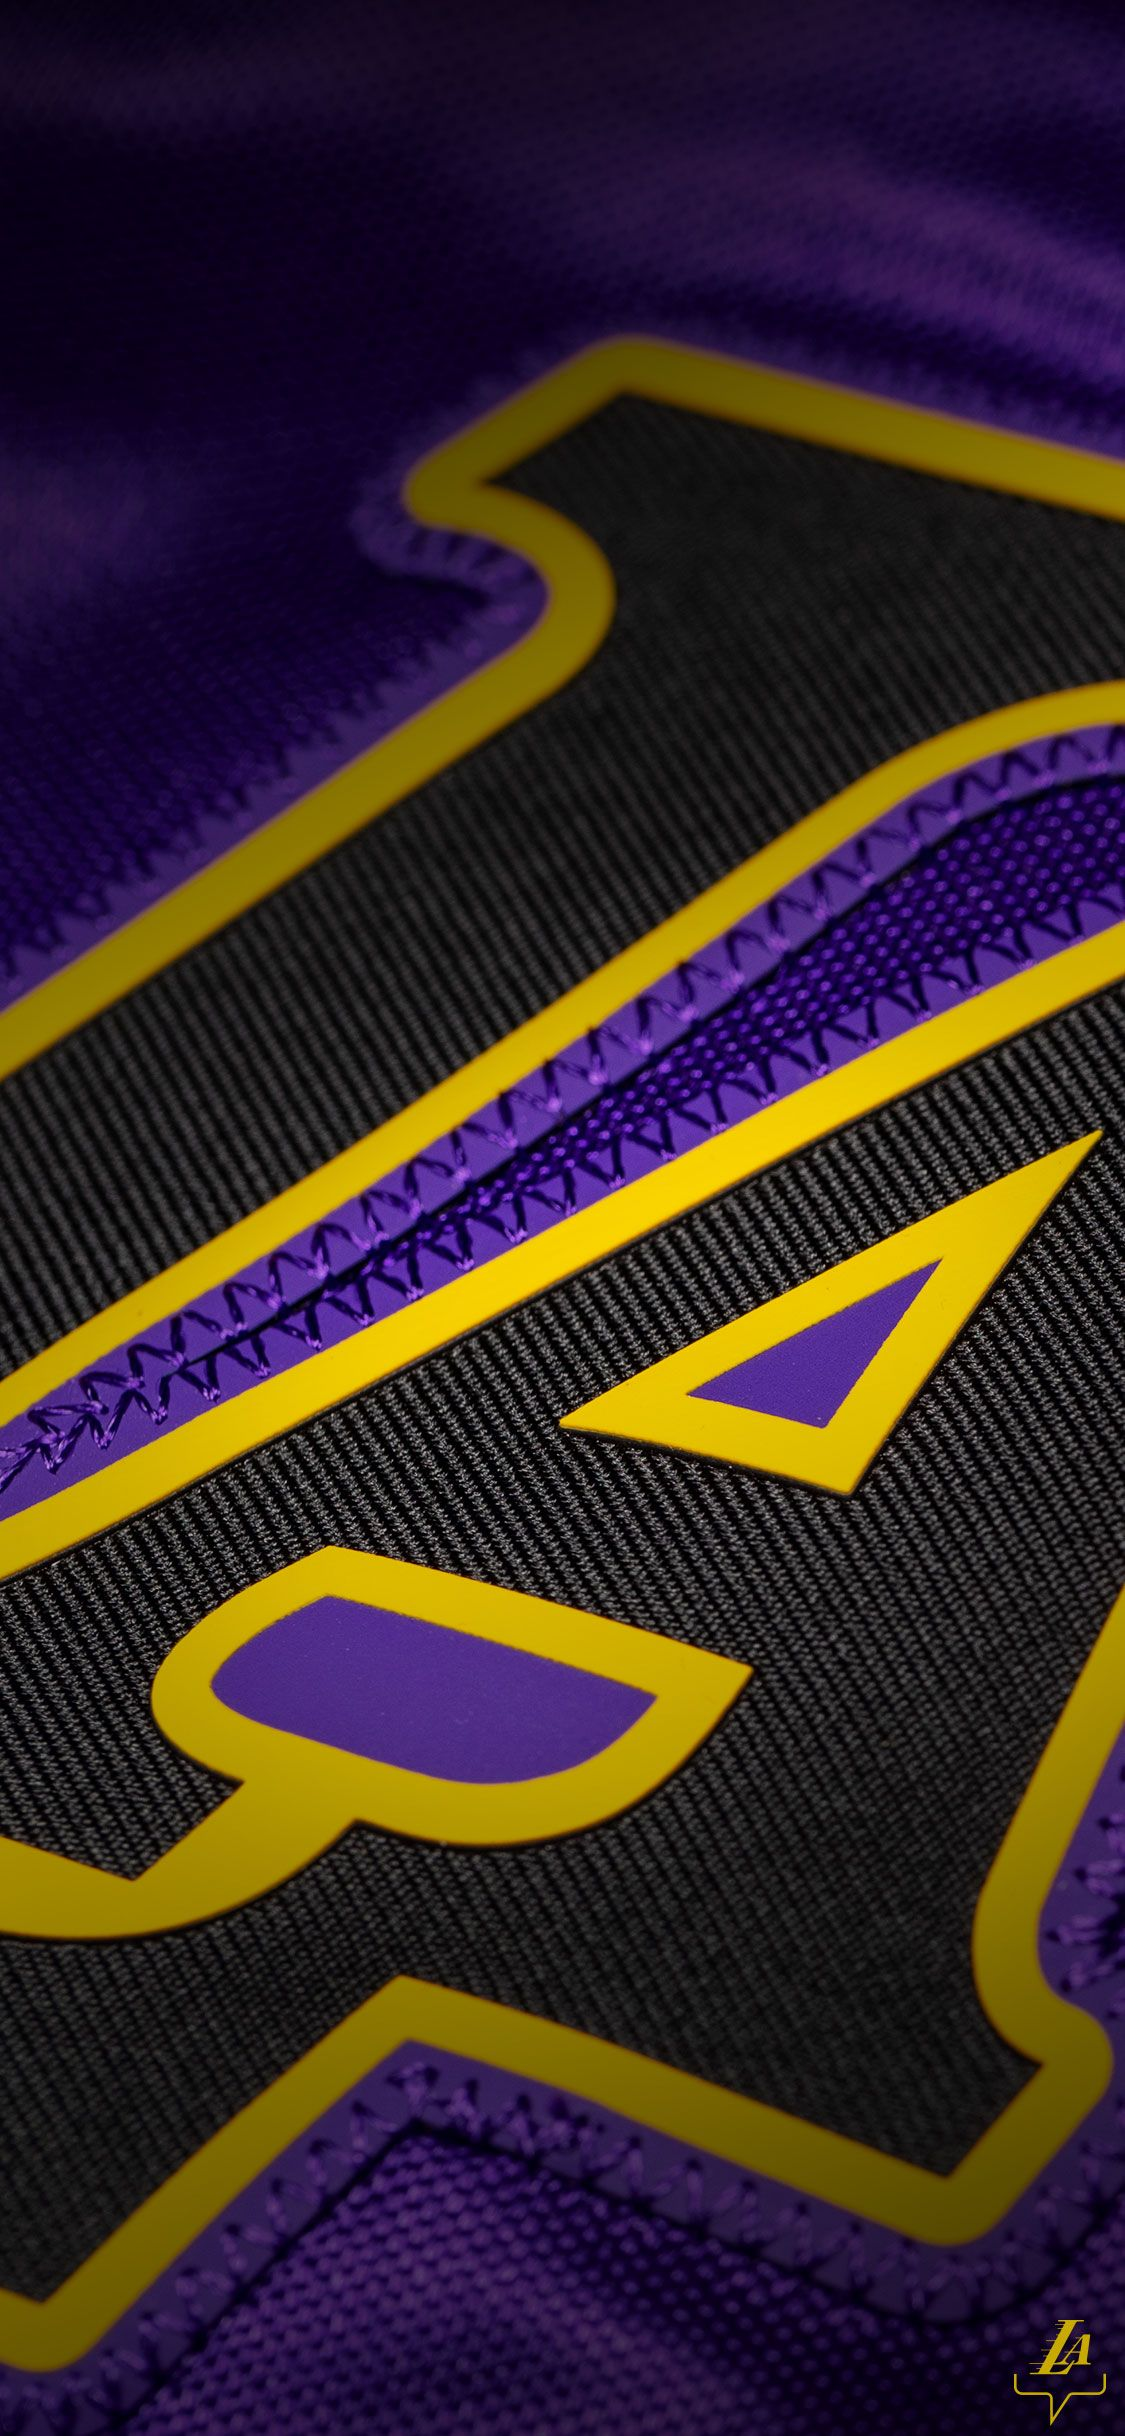 From lakers page Lakers wallpaper, Lebron james lakers